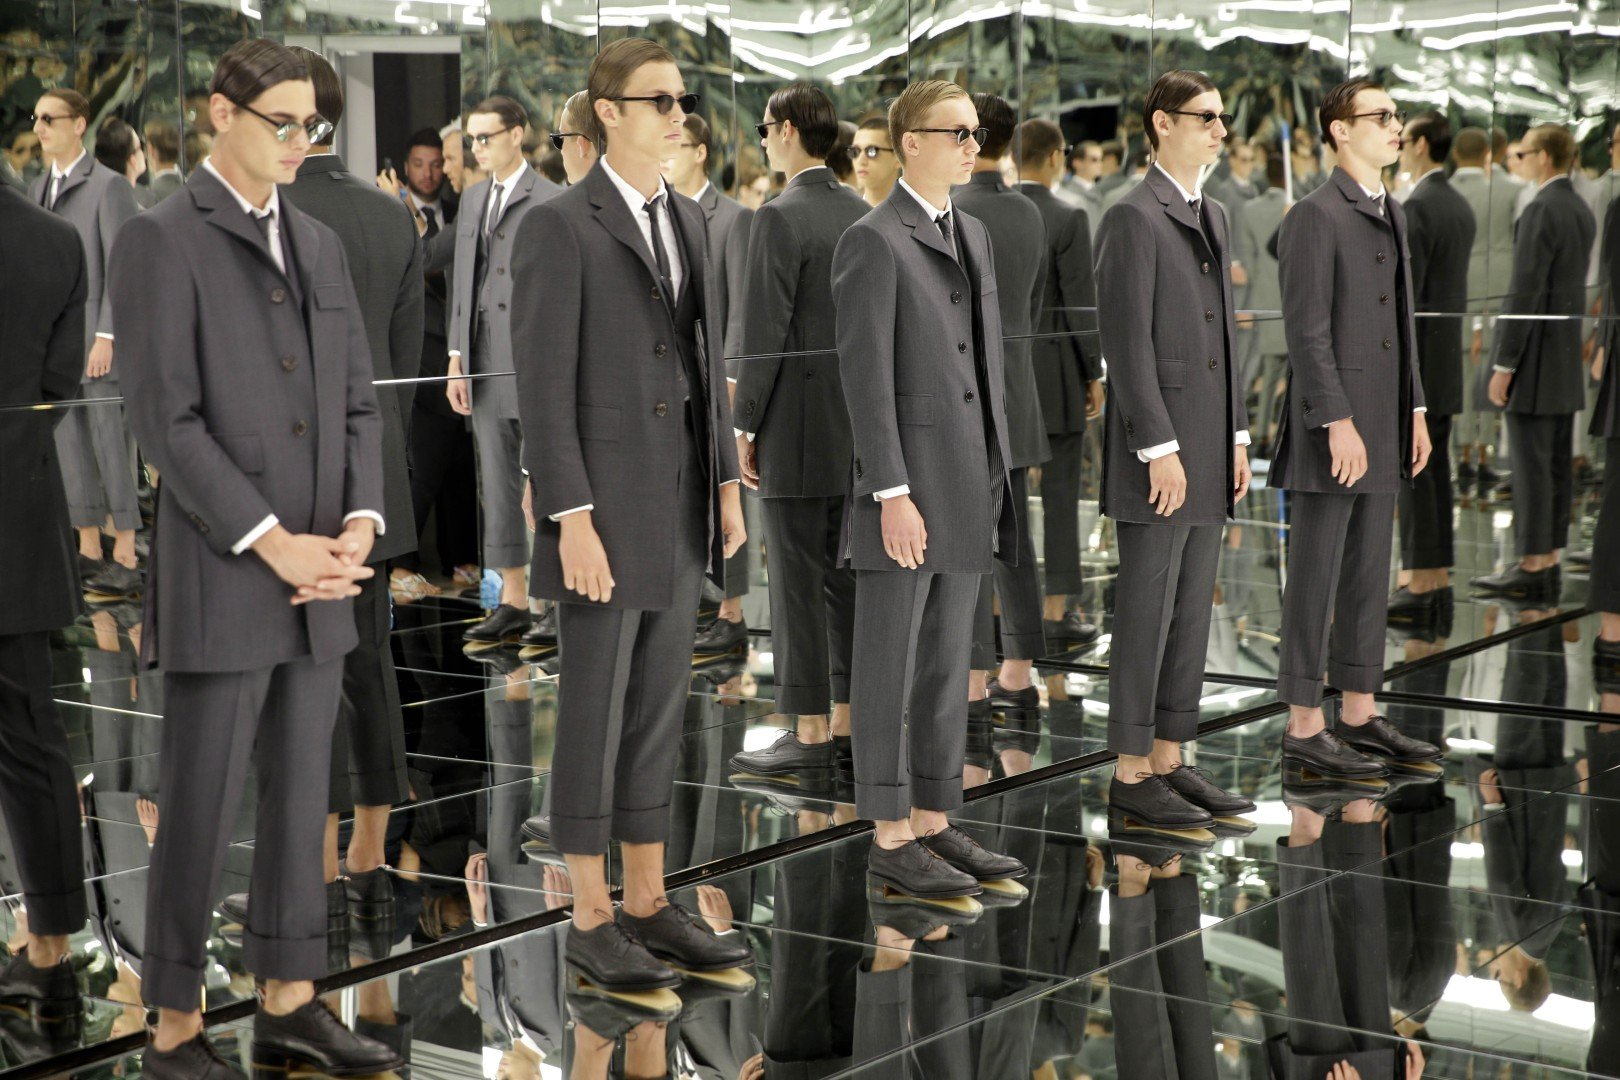 81004bb14e408 New York men s fashion week debut suits designers just fine